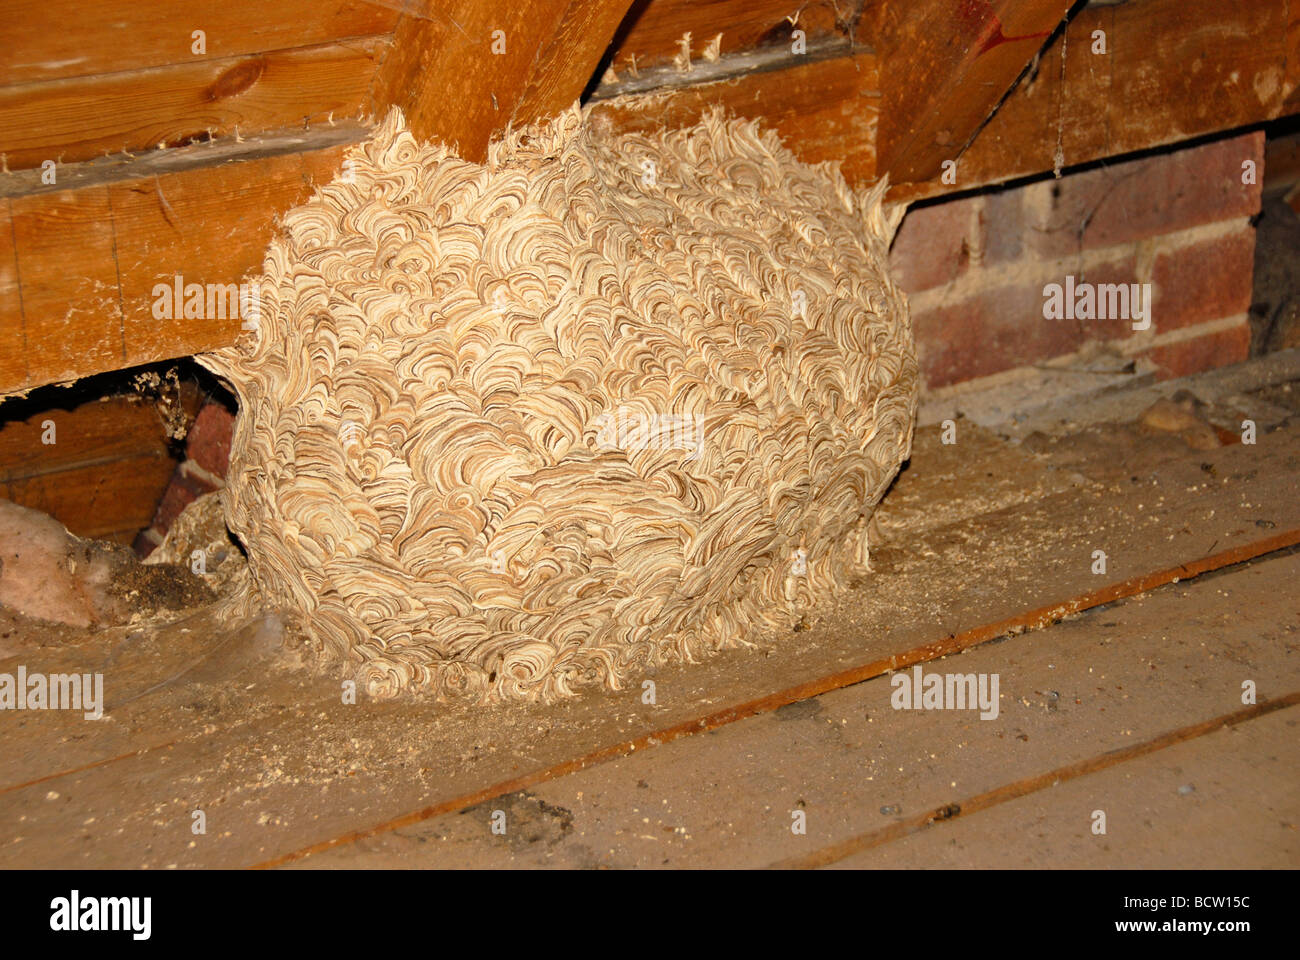 Wasps' nest in domestic loft - Stock Image